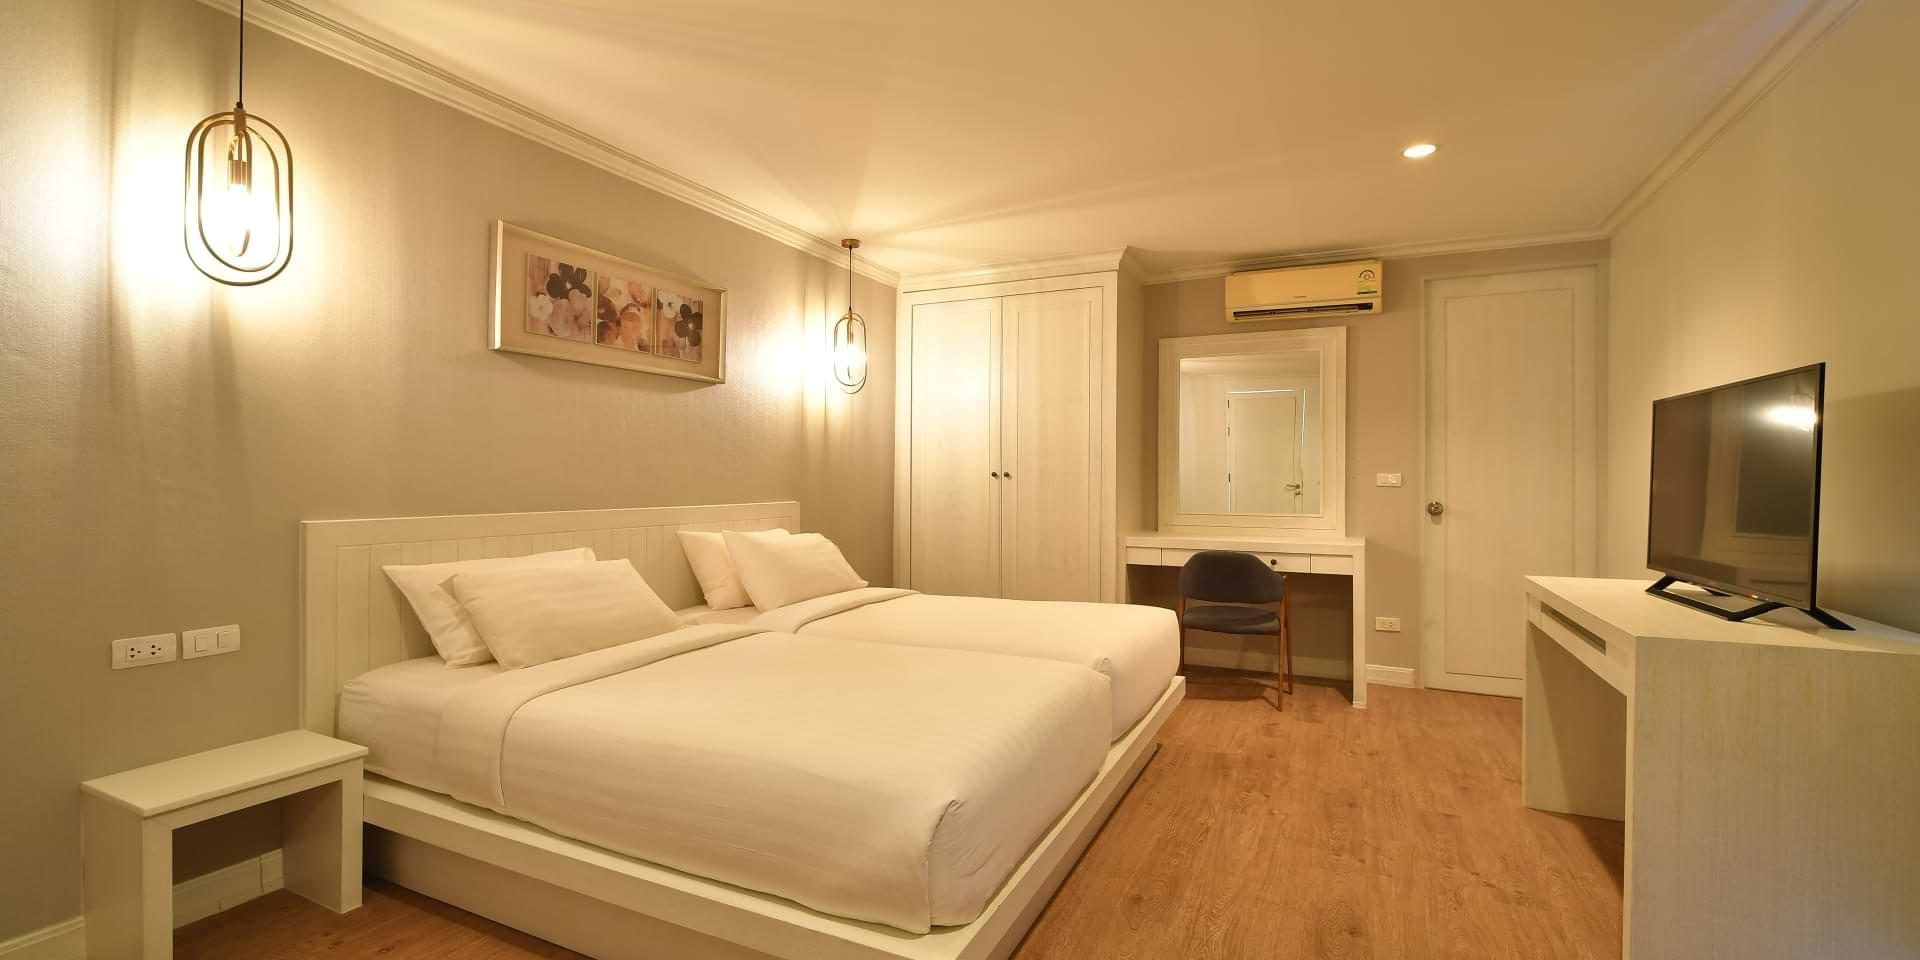 Guest House Bedroom 5